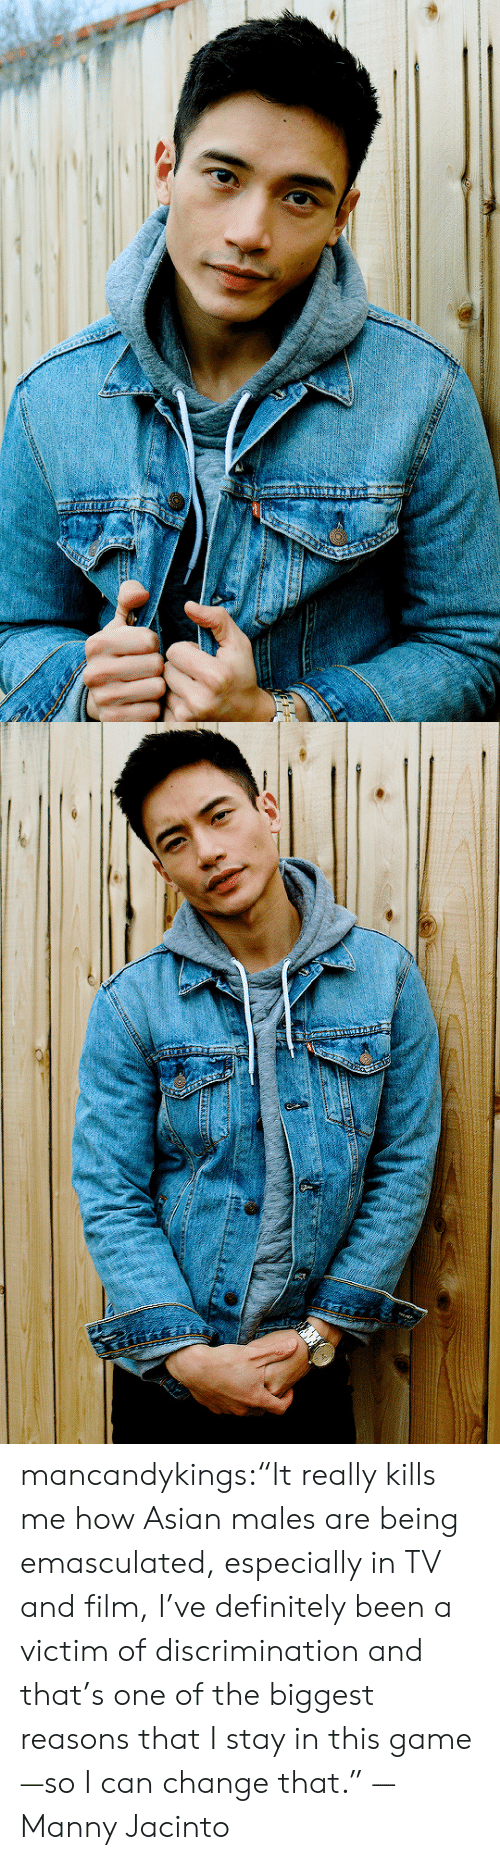 "I Stay: mancandykings:""It really kills me how Asian males are being emasculated, especially in TV and film, I've definitely been a victim of discrimination and that's one of the biggest reasons that I stay in this game—so I can change that."" — Manny Jacinto"